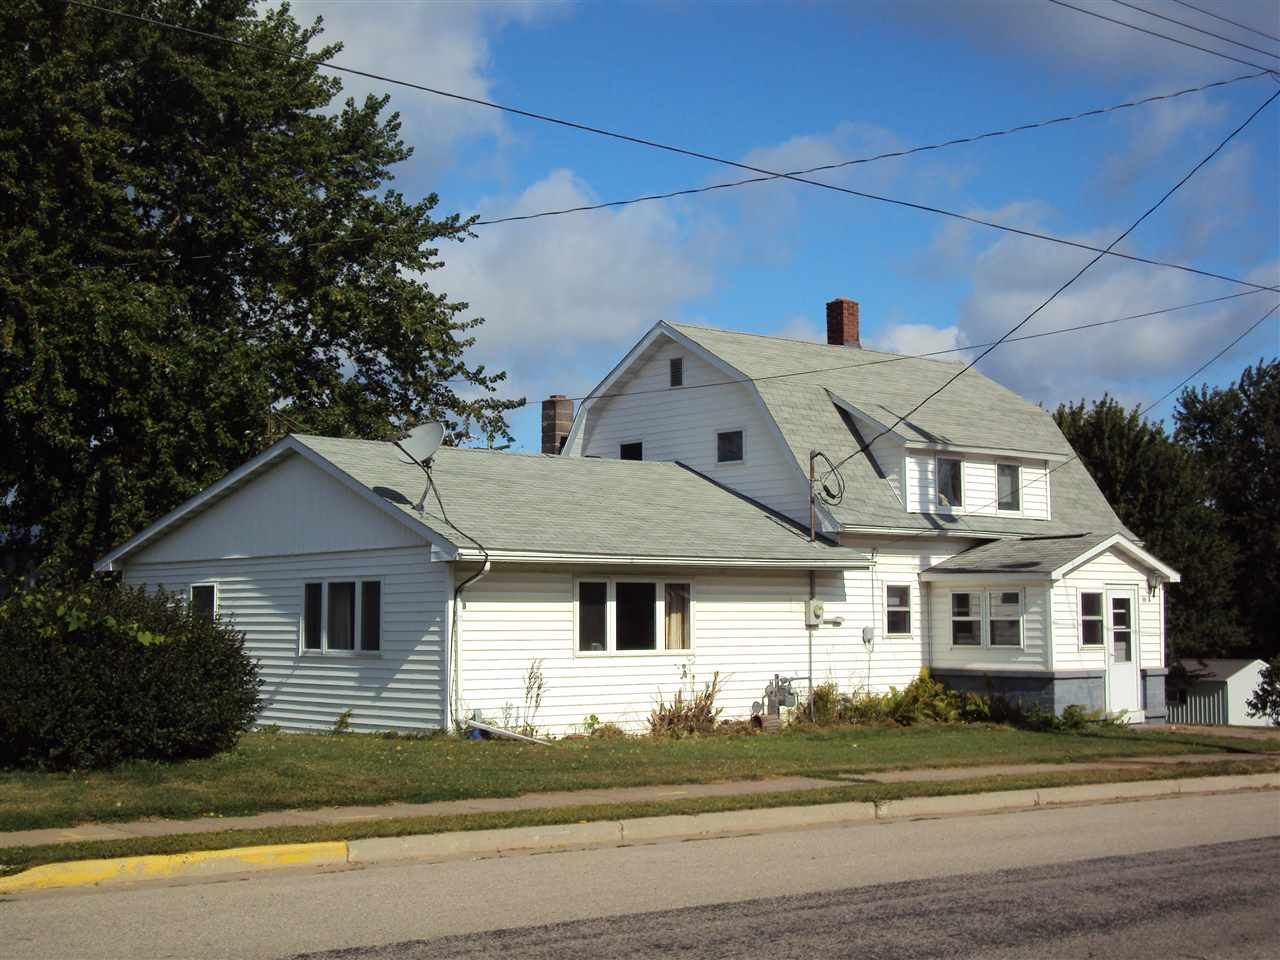 109 S Main St, Eastman, WI 54626